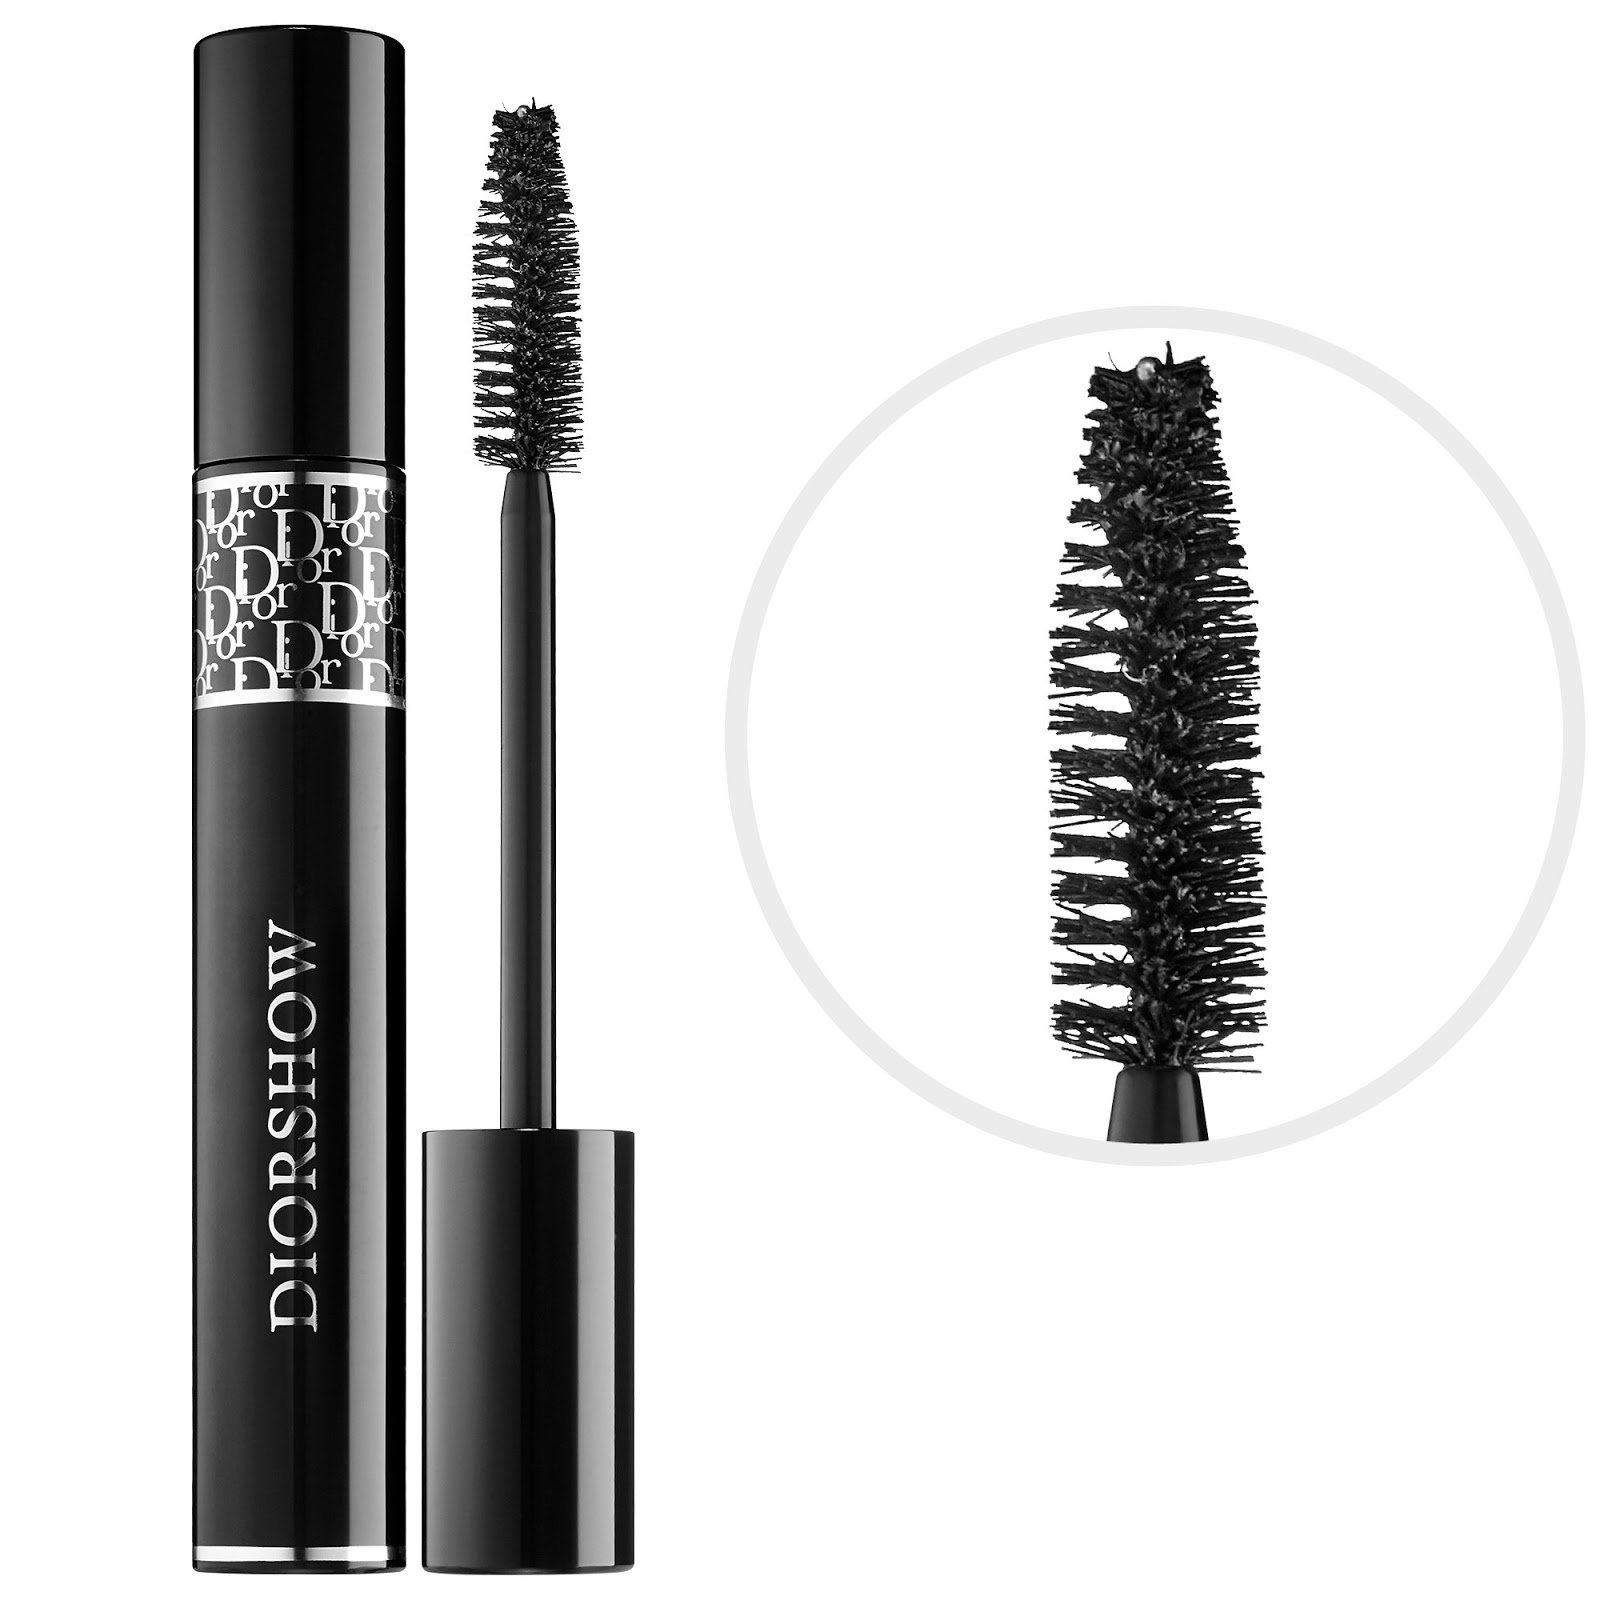 Christian Dior - Diorshow Mascara 090 Black 10 ml